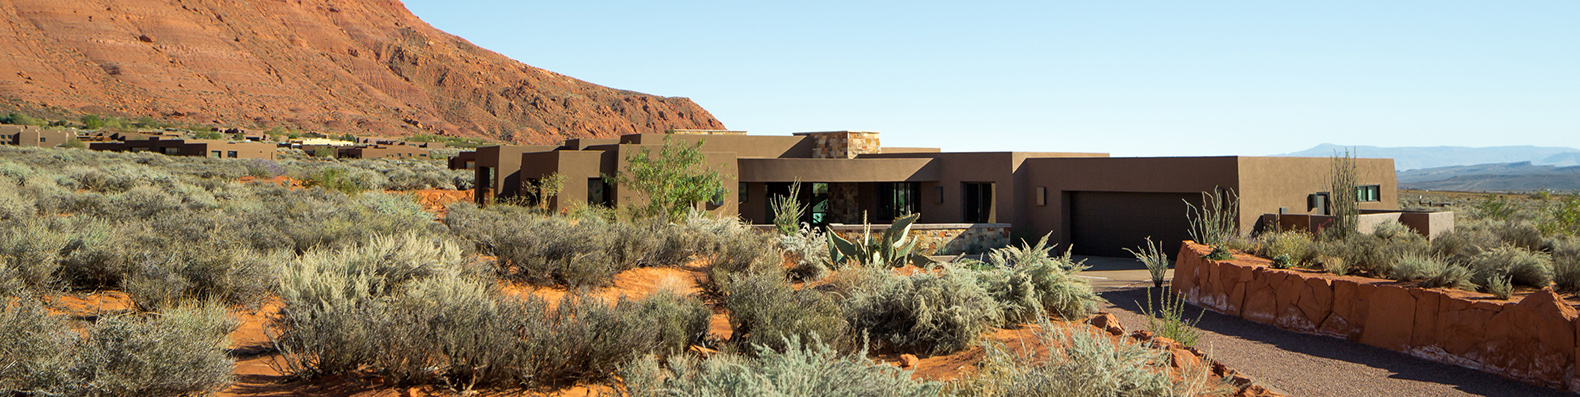 A Unique Community Of Modern Green Homes Hug The Desert Floor In Utah